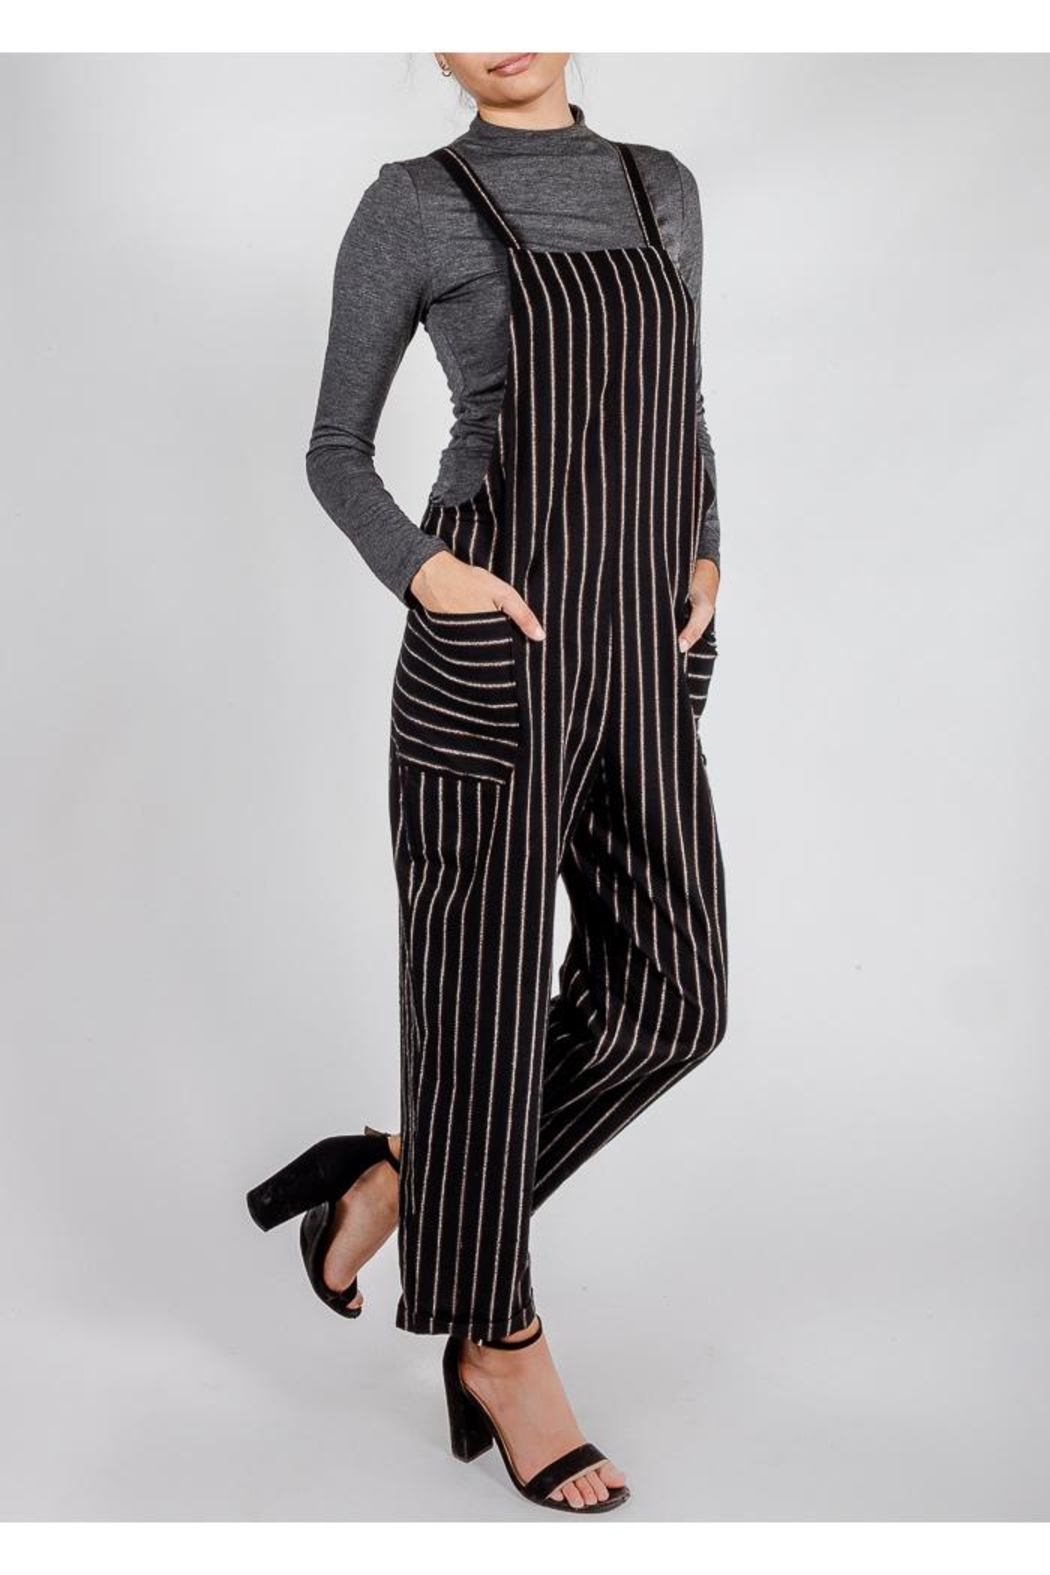 All In Favor Black Striped Slouchy-Overalls - Side Cropped Image